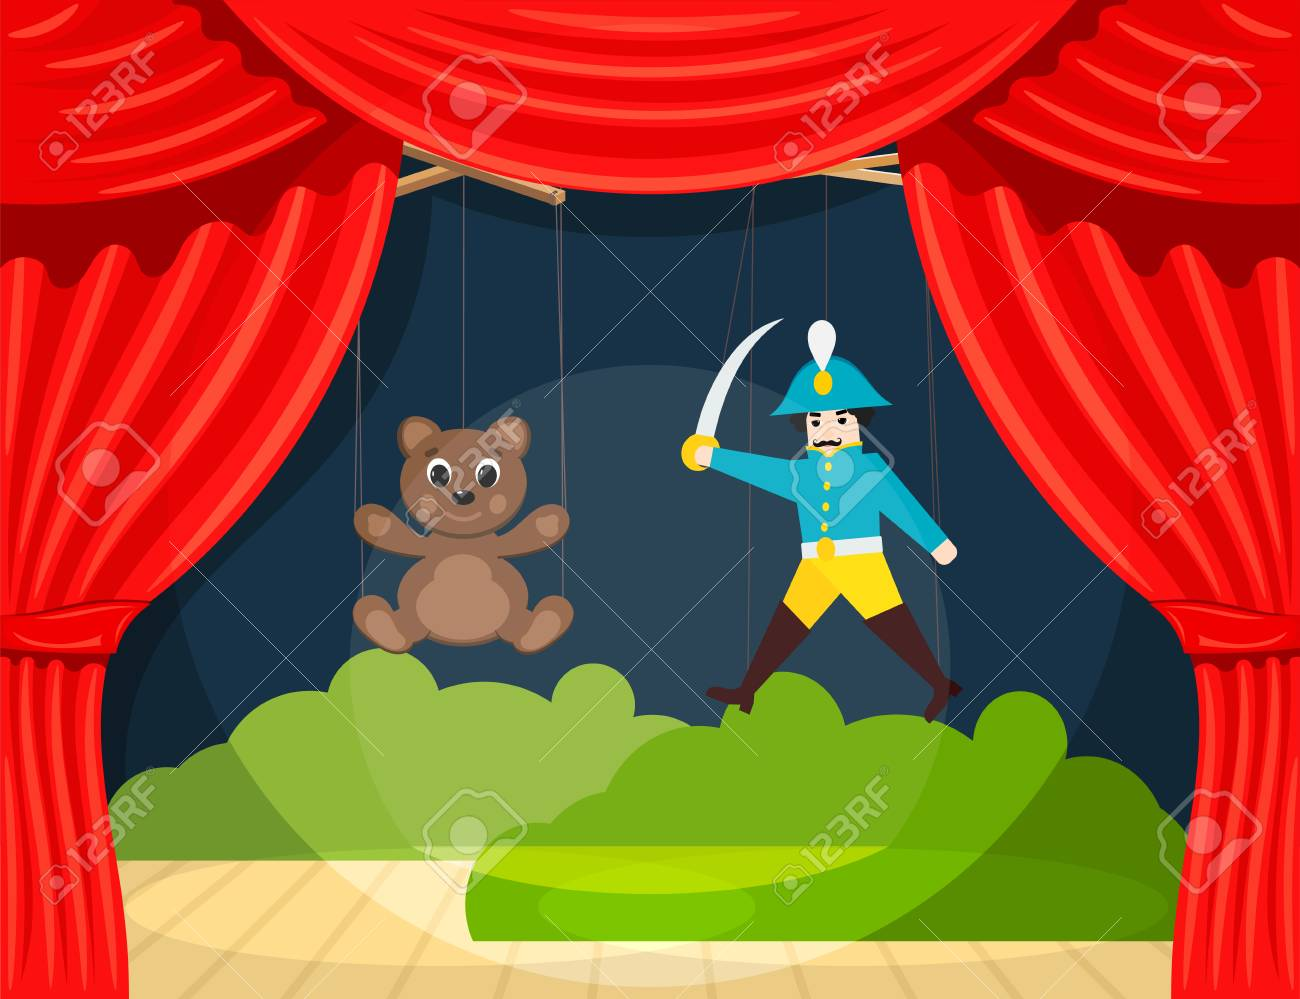 Children's Puppet Theater with puppets puppets bear and soldier. Vector illustration - 93886749